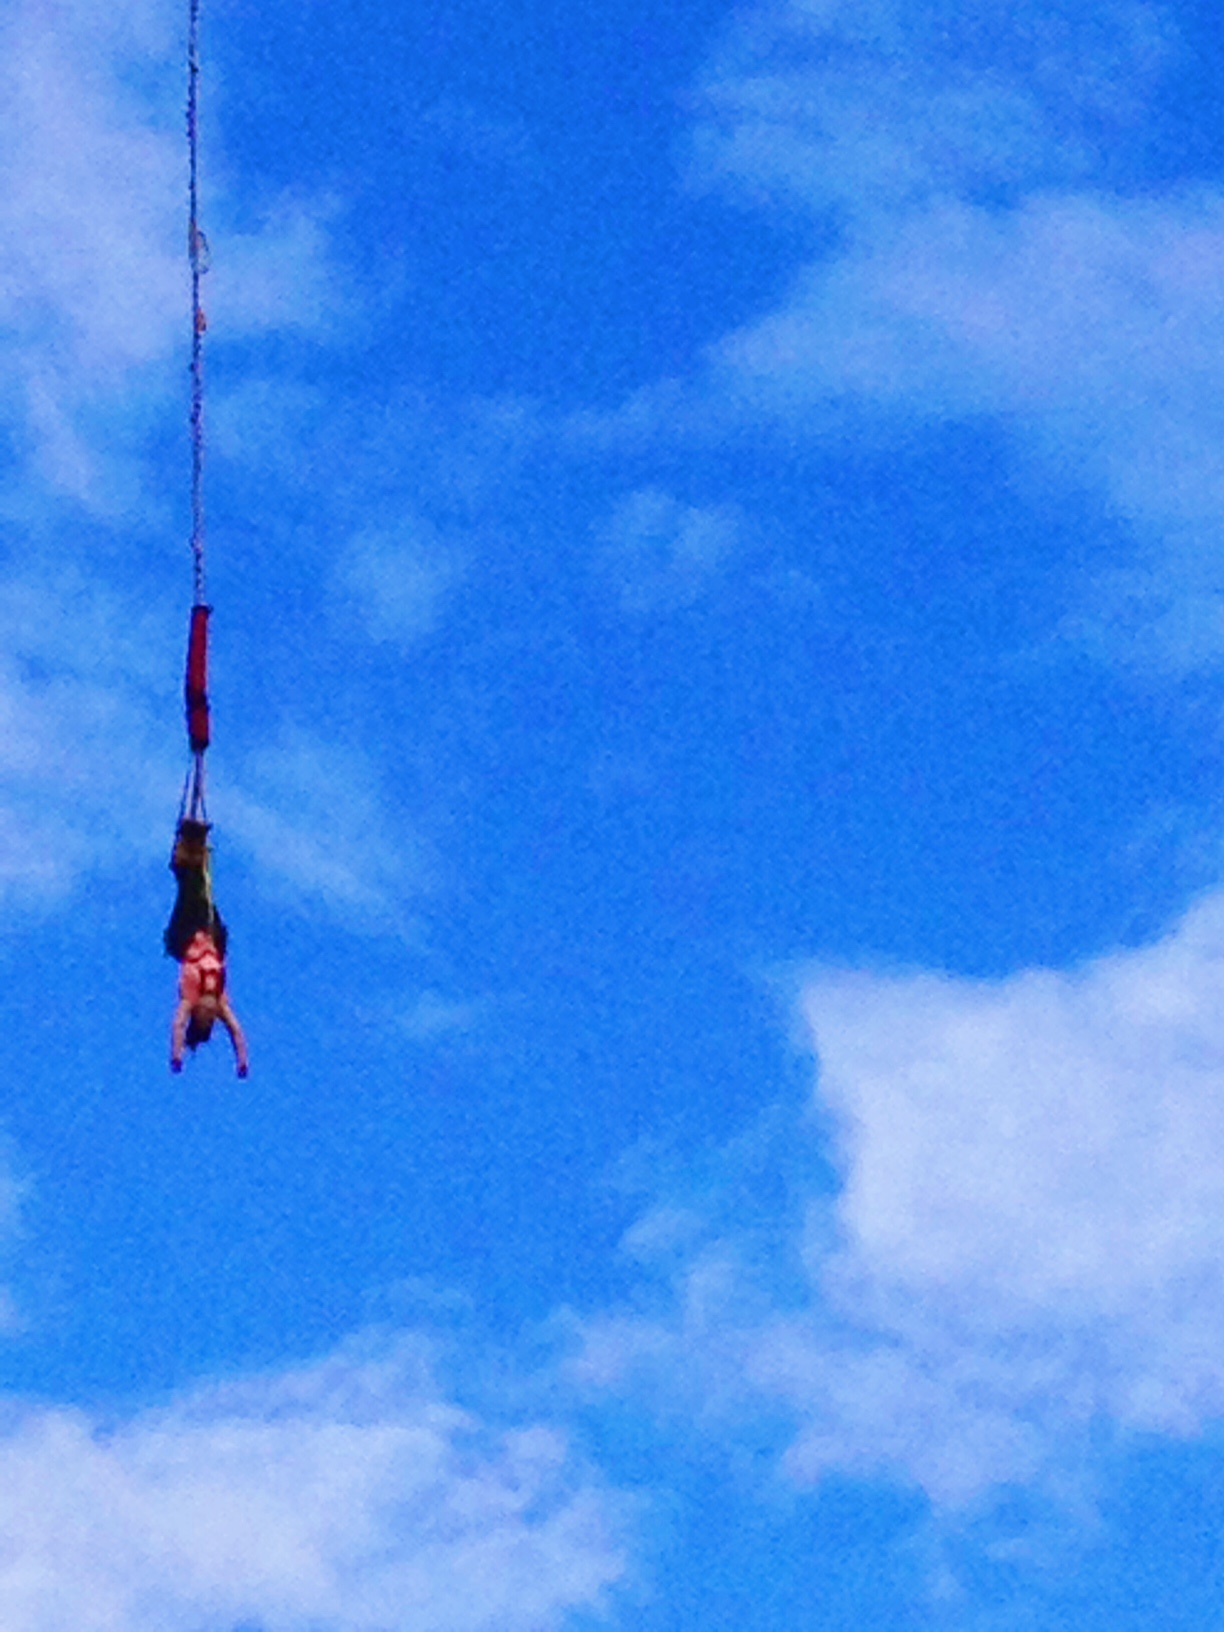 My third bungee (of four so far) and definitely the most uncomfortable/unsafe